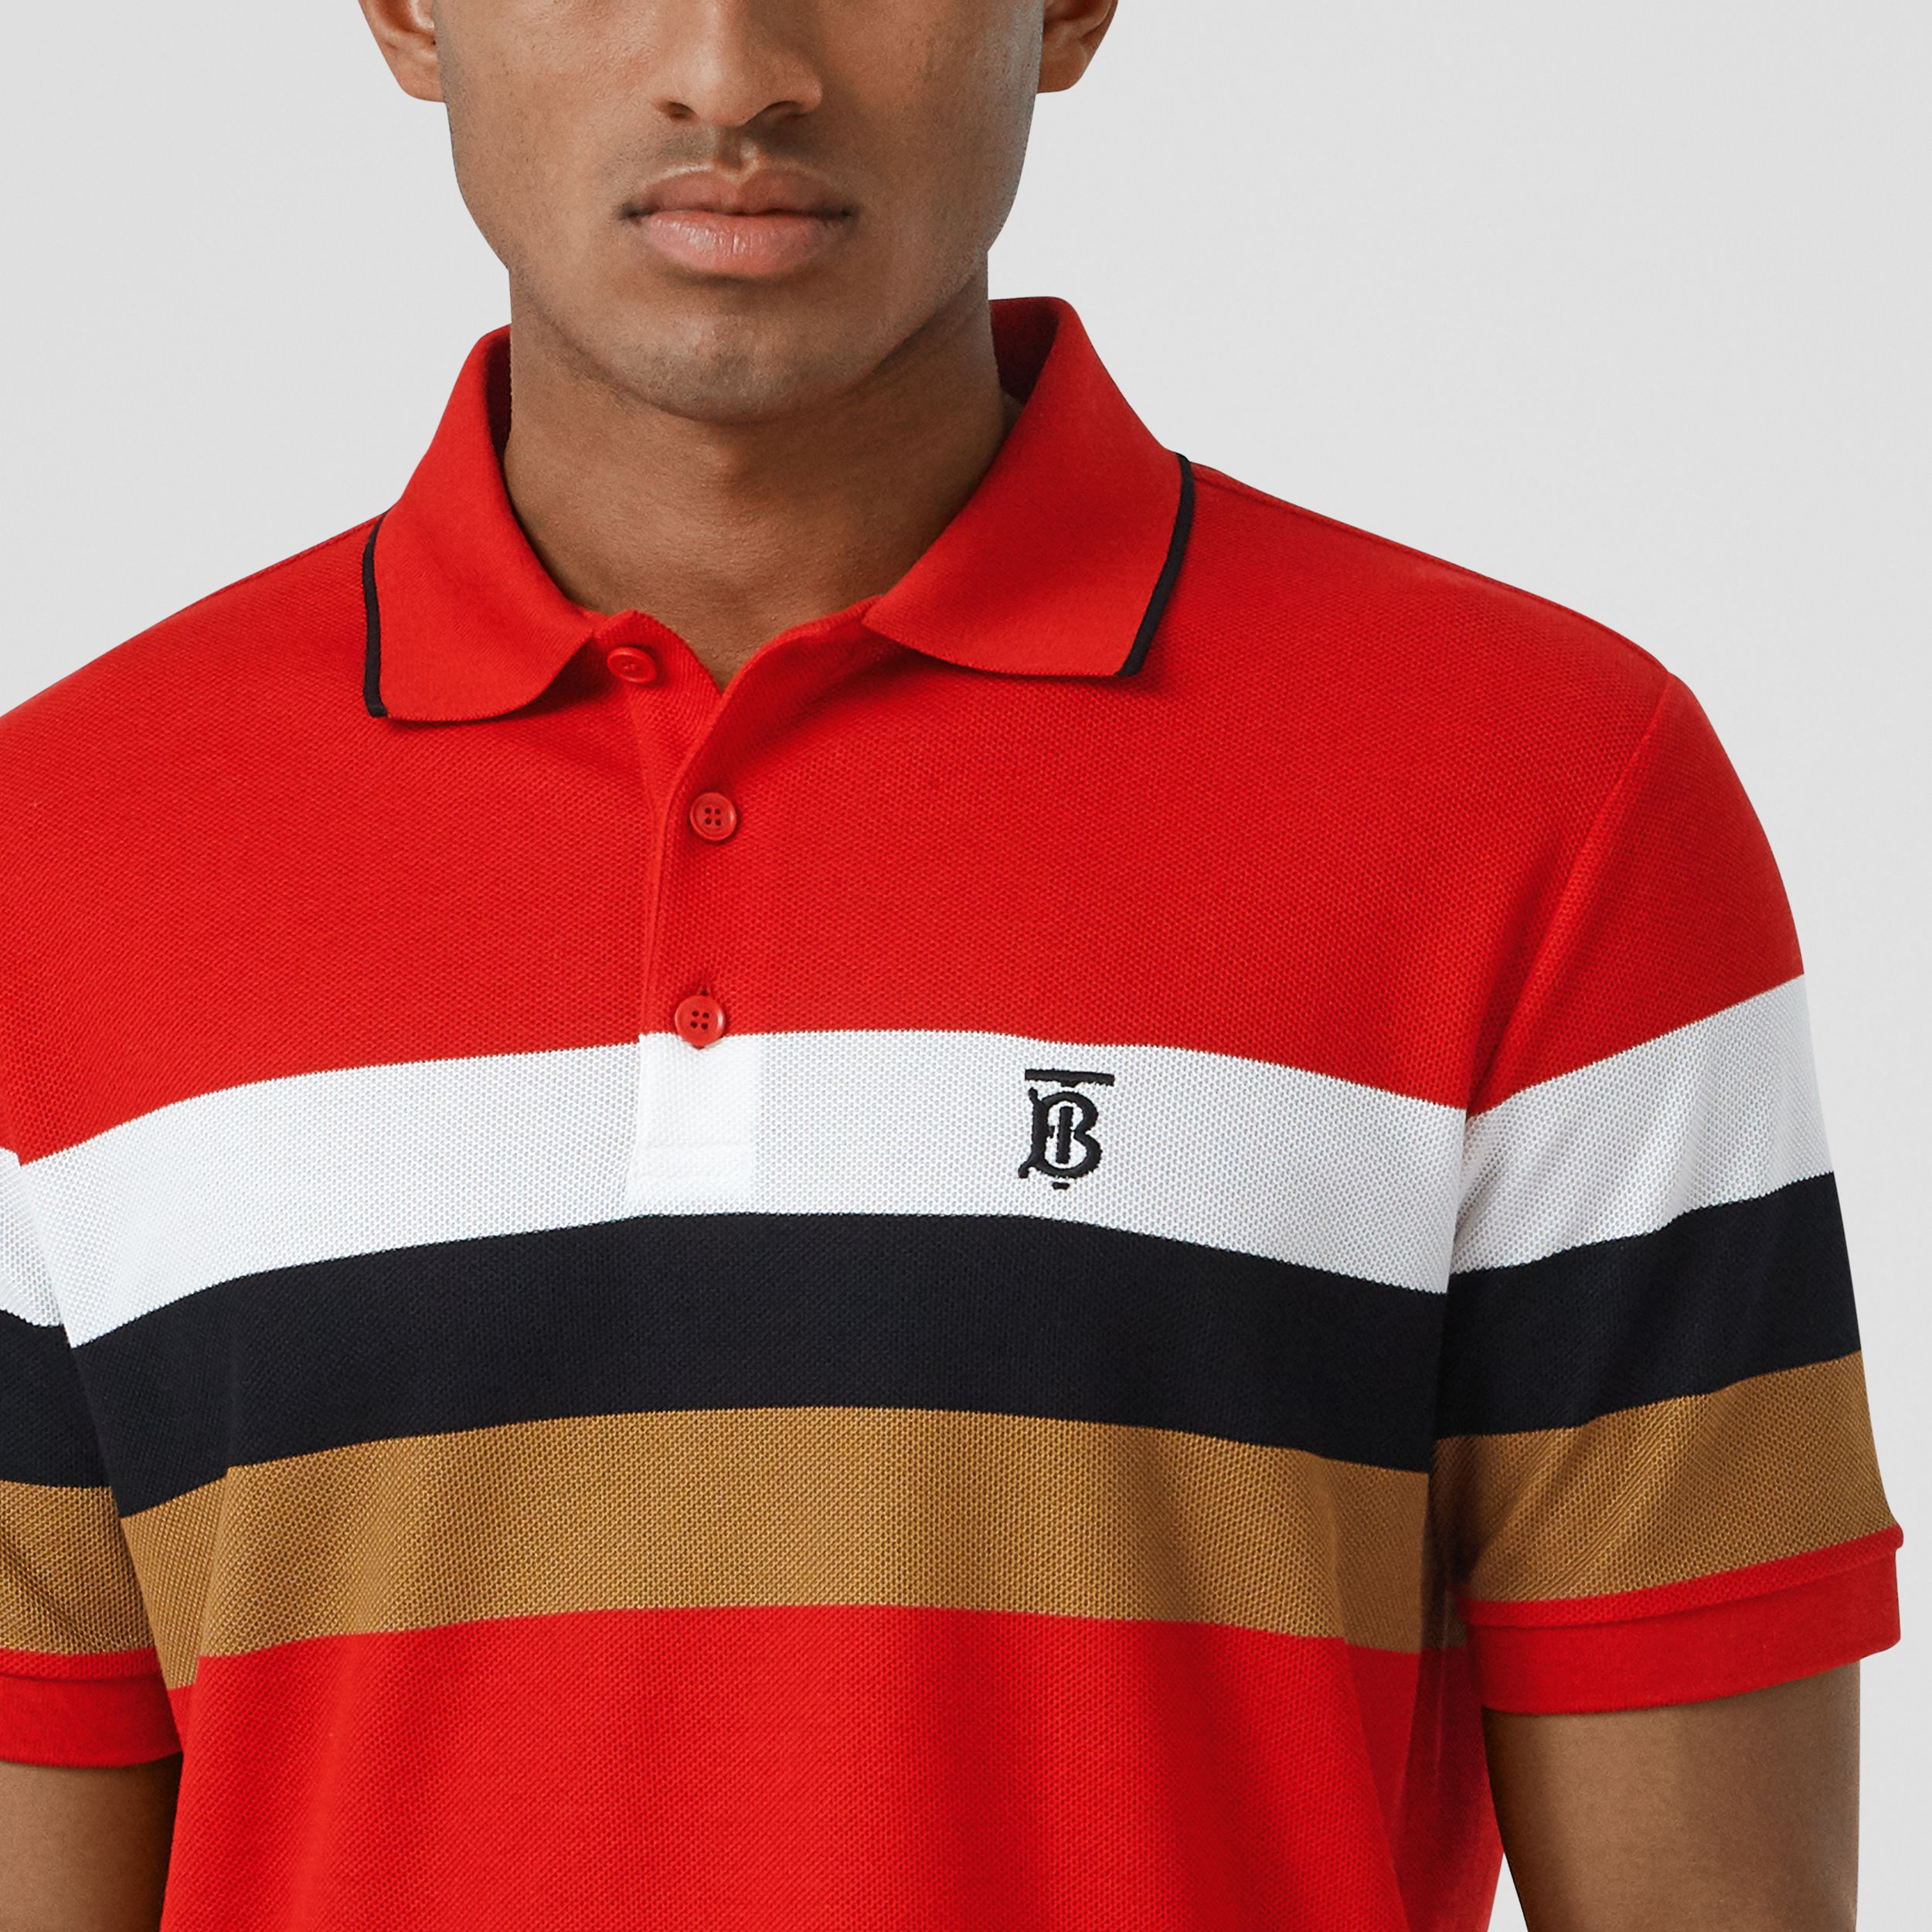 Monogram Motif Striped Cotton Polo Shirt in Bright Red - Men | Burberry - 2